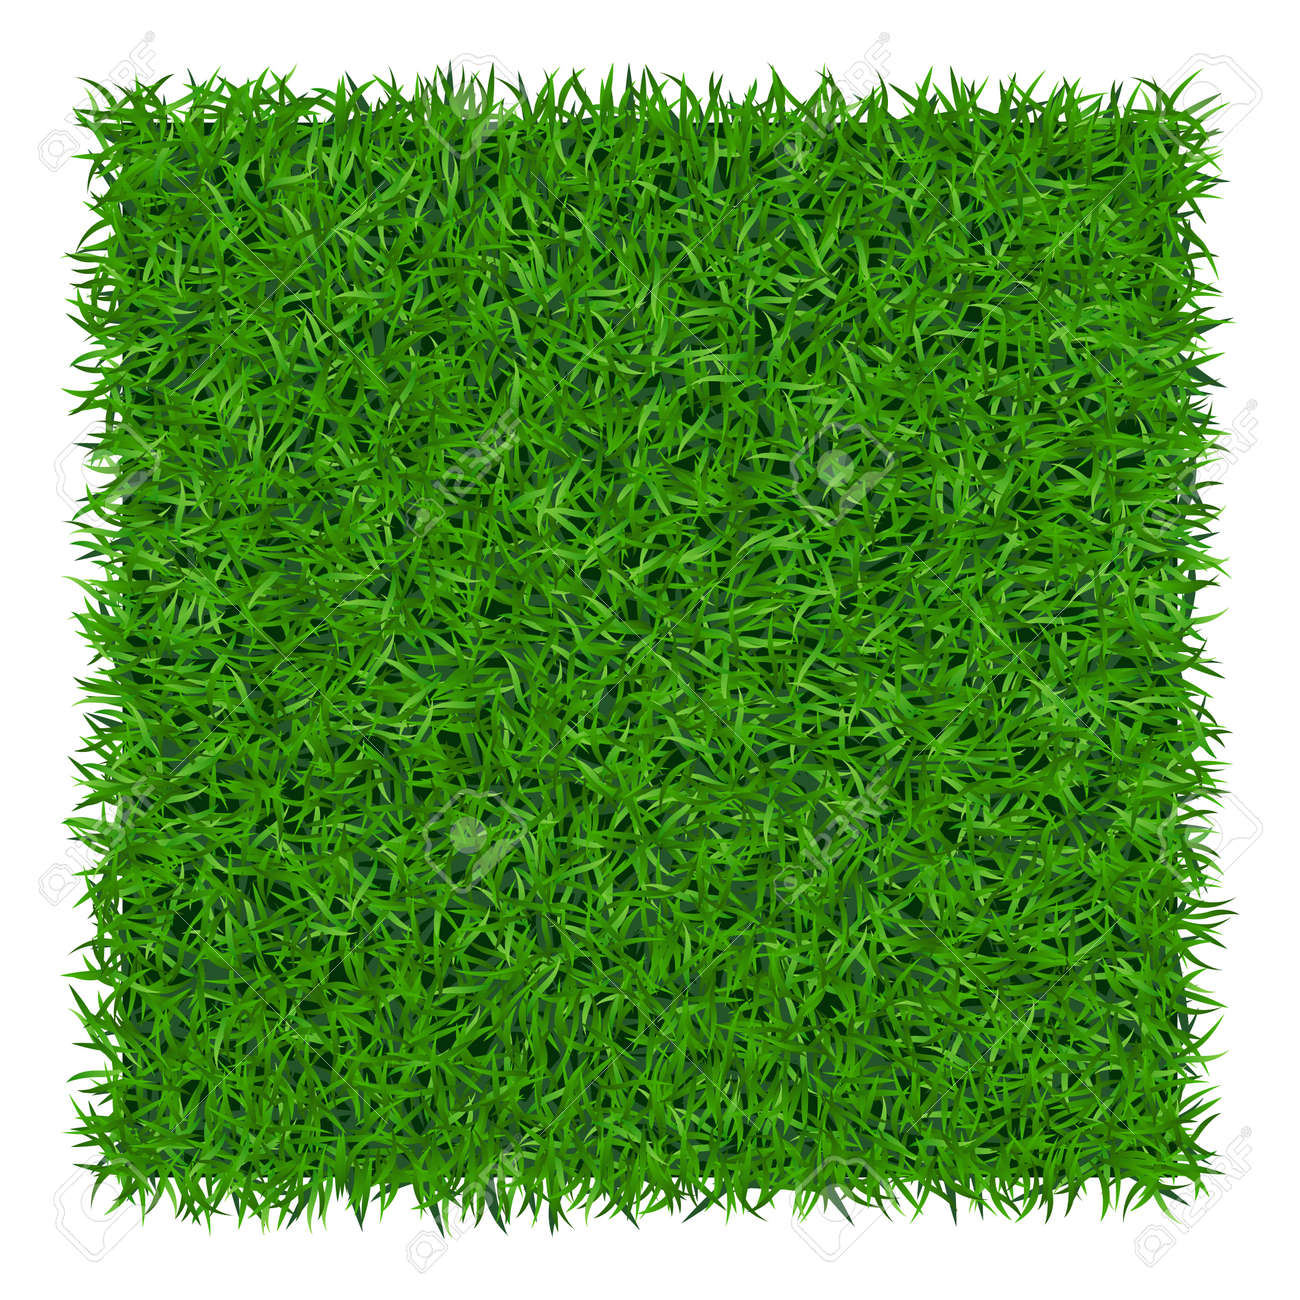 Green grass background. Lawn nature. Abstract field texture. Symbol of summer, plant, eco and natural, growth or fresh. Design for card, banner. Meadow template for print products. Vector Illustration - 54127065